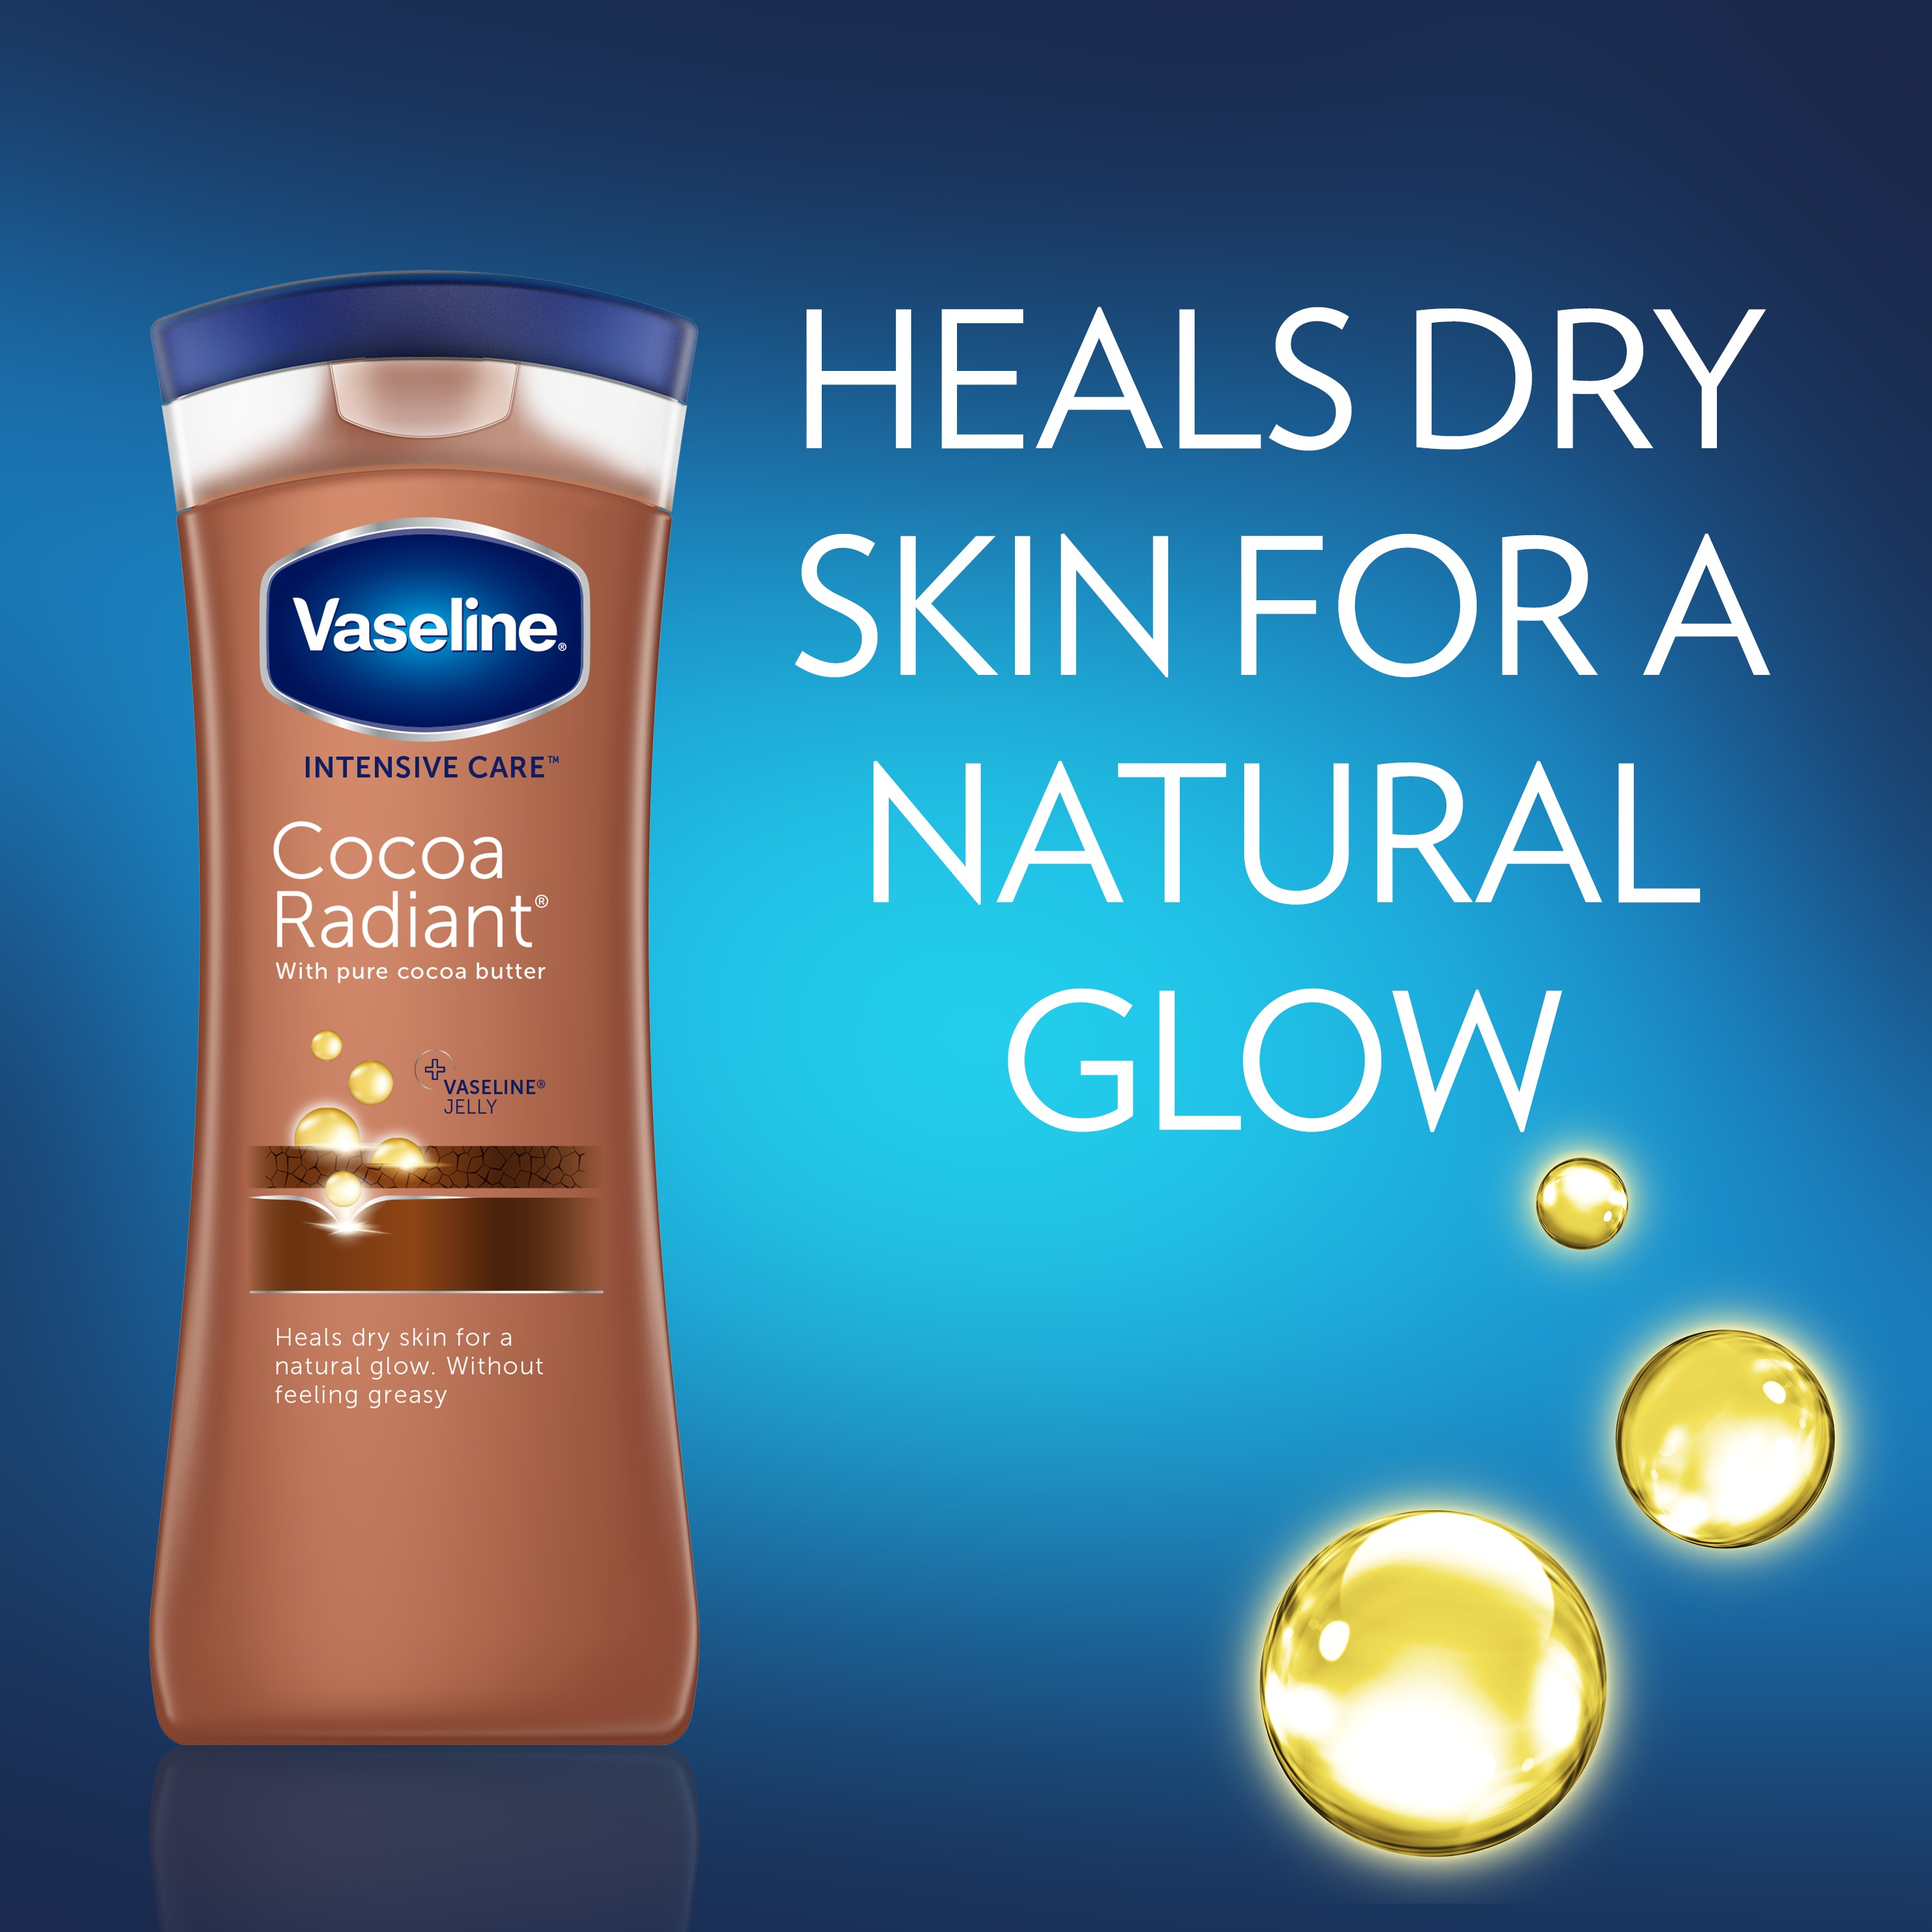 Vaseline Intensive Care Body Lotion Cocoa Radiant 10 Oz Healthy White Perfect 200ml Twin Pack